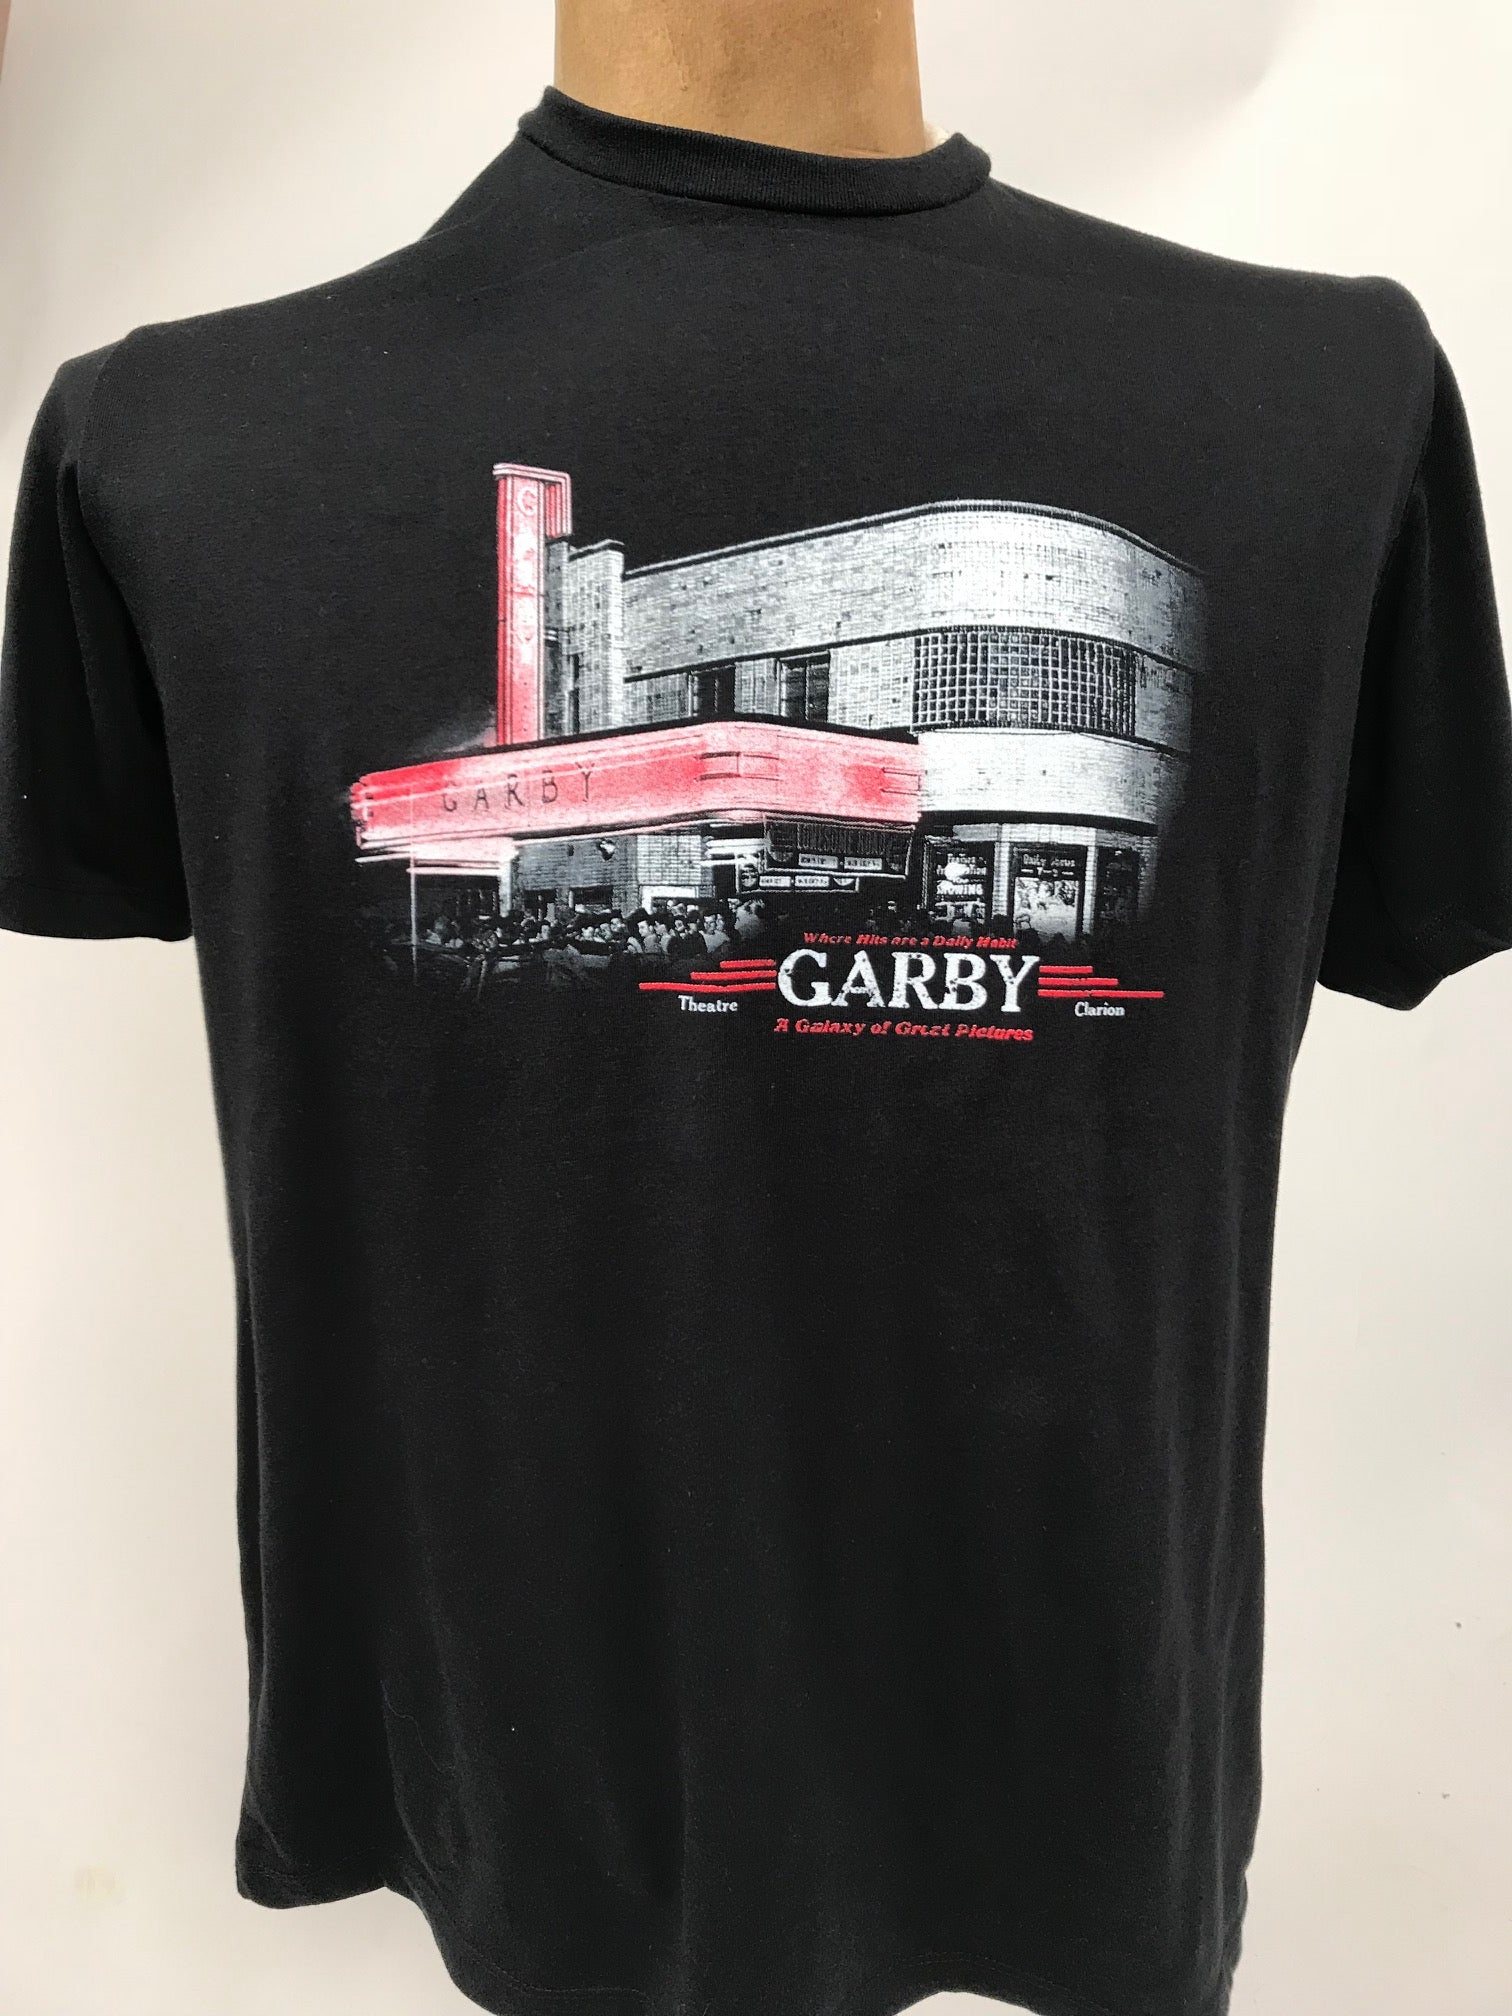 d9a88f0aa Men's FL Crooks & Co. | Throwback Clarion Vintage Tee | Garby ...